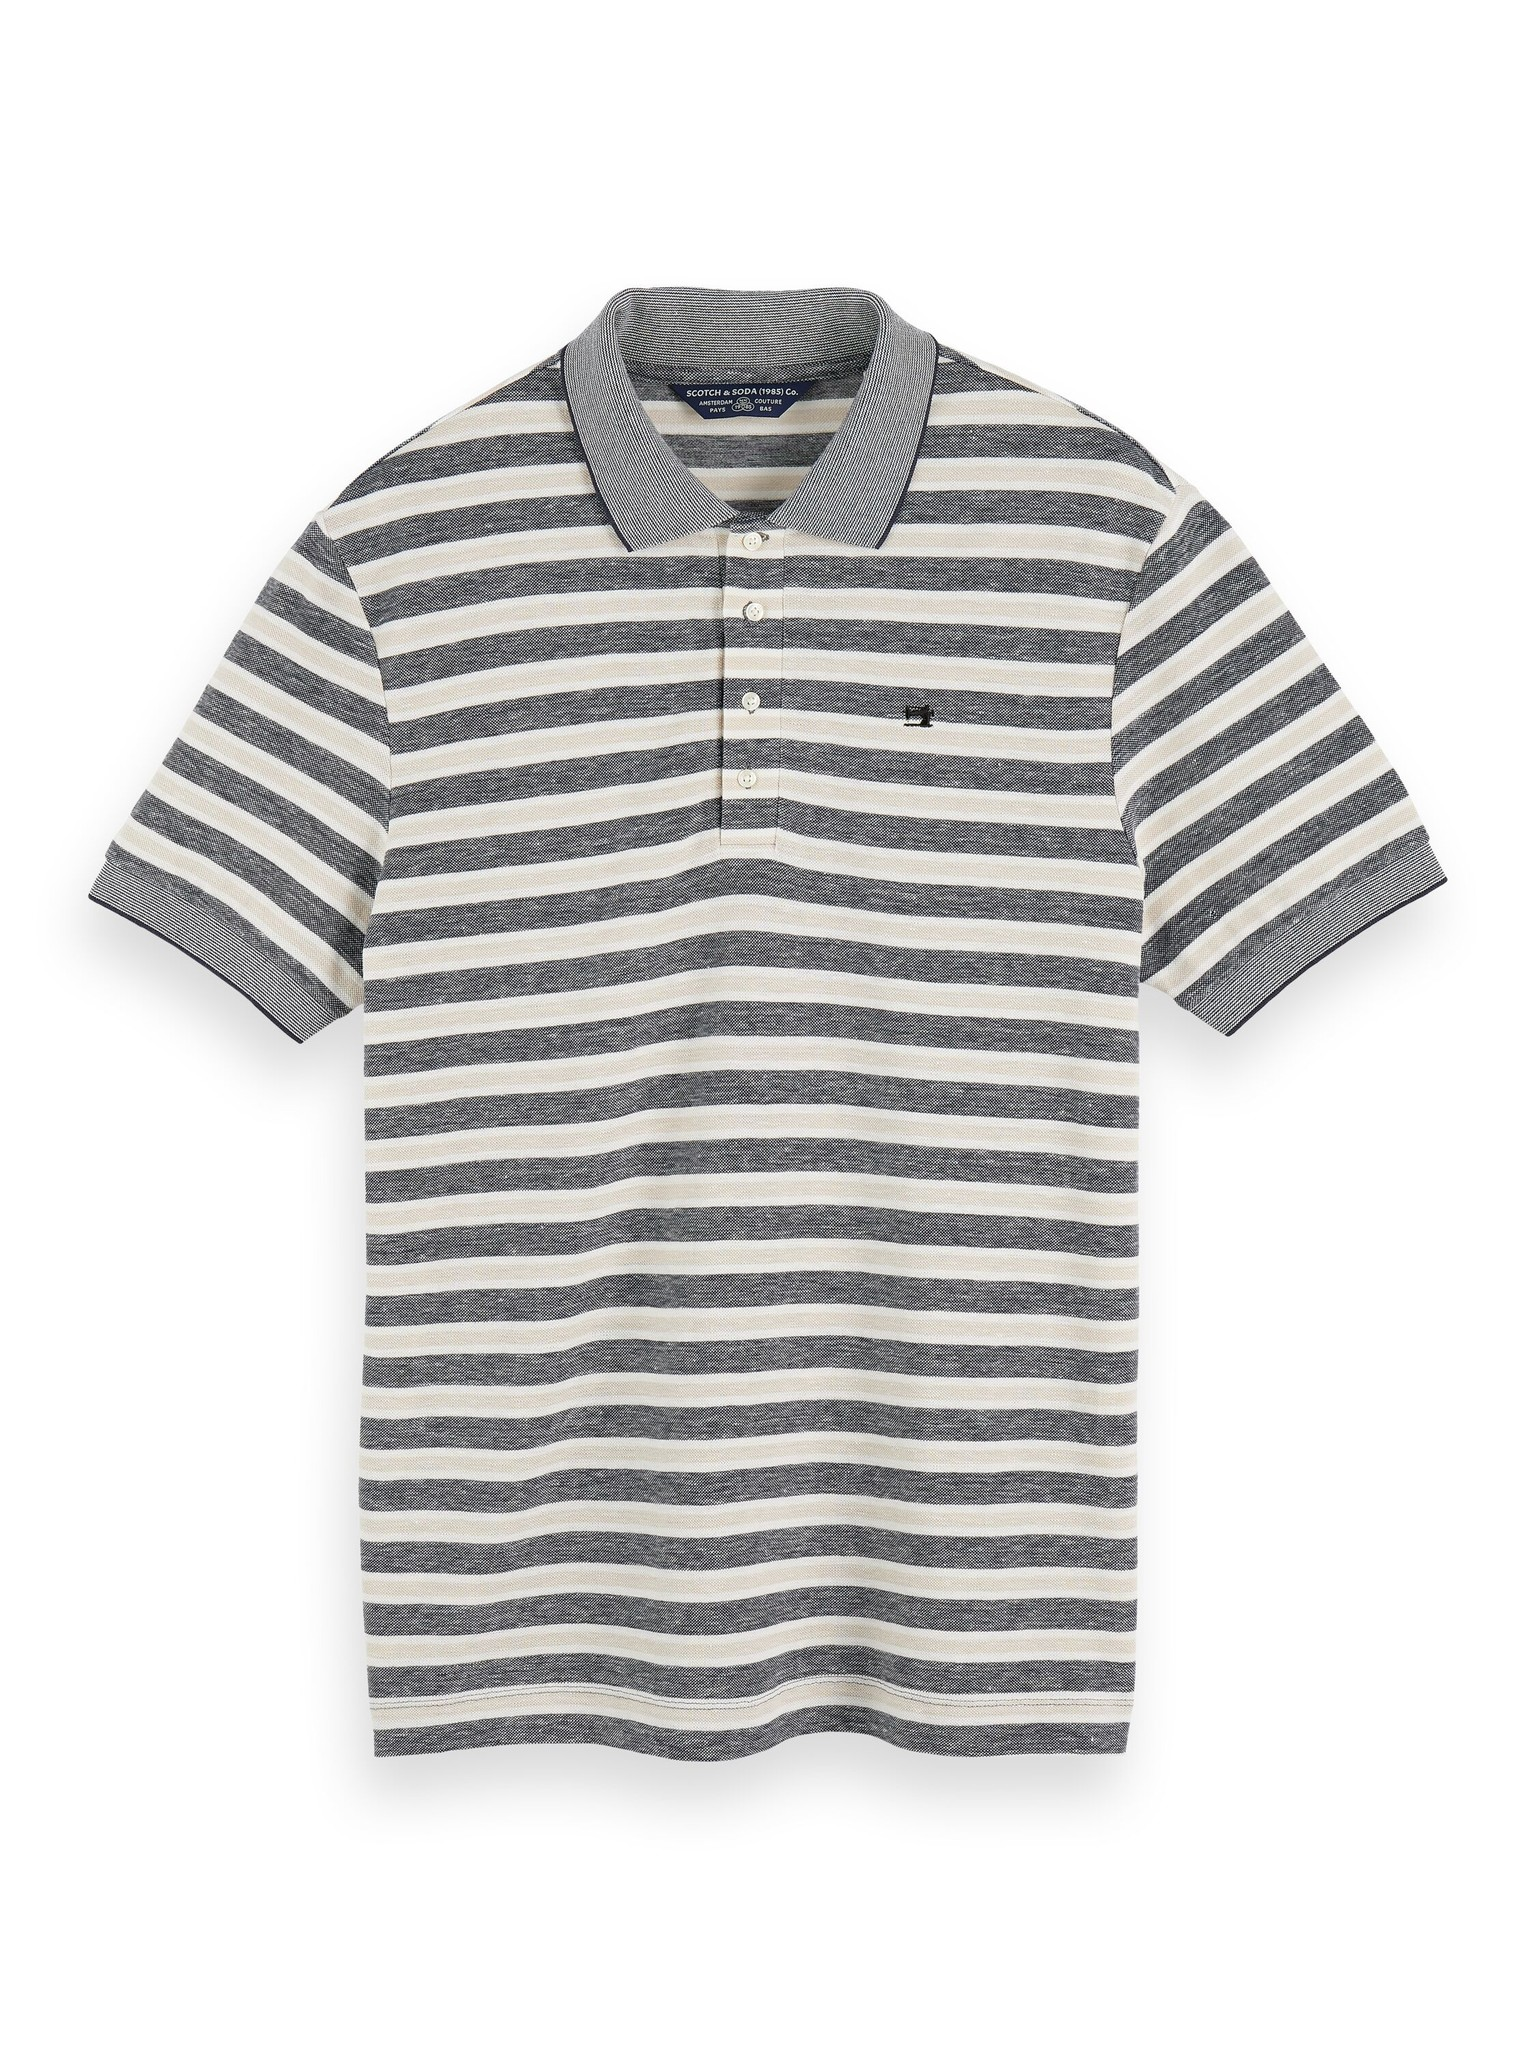 Scotch & Soda Polo Scotch & Soda 155454-0217